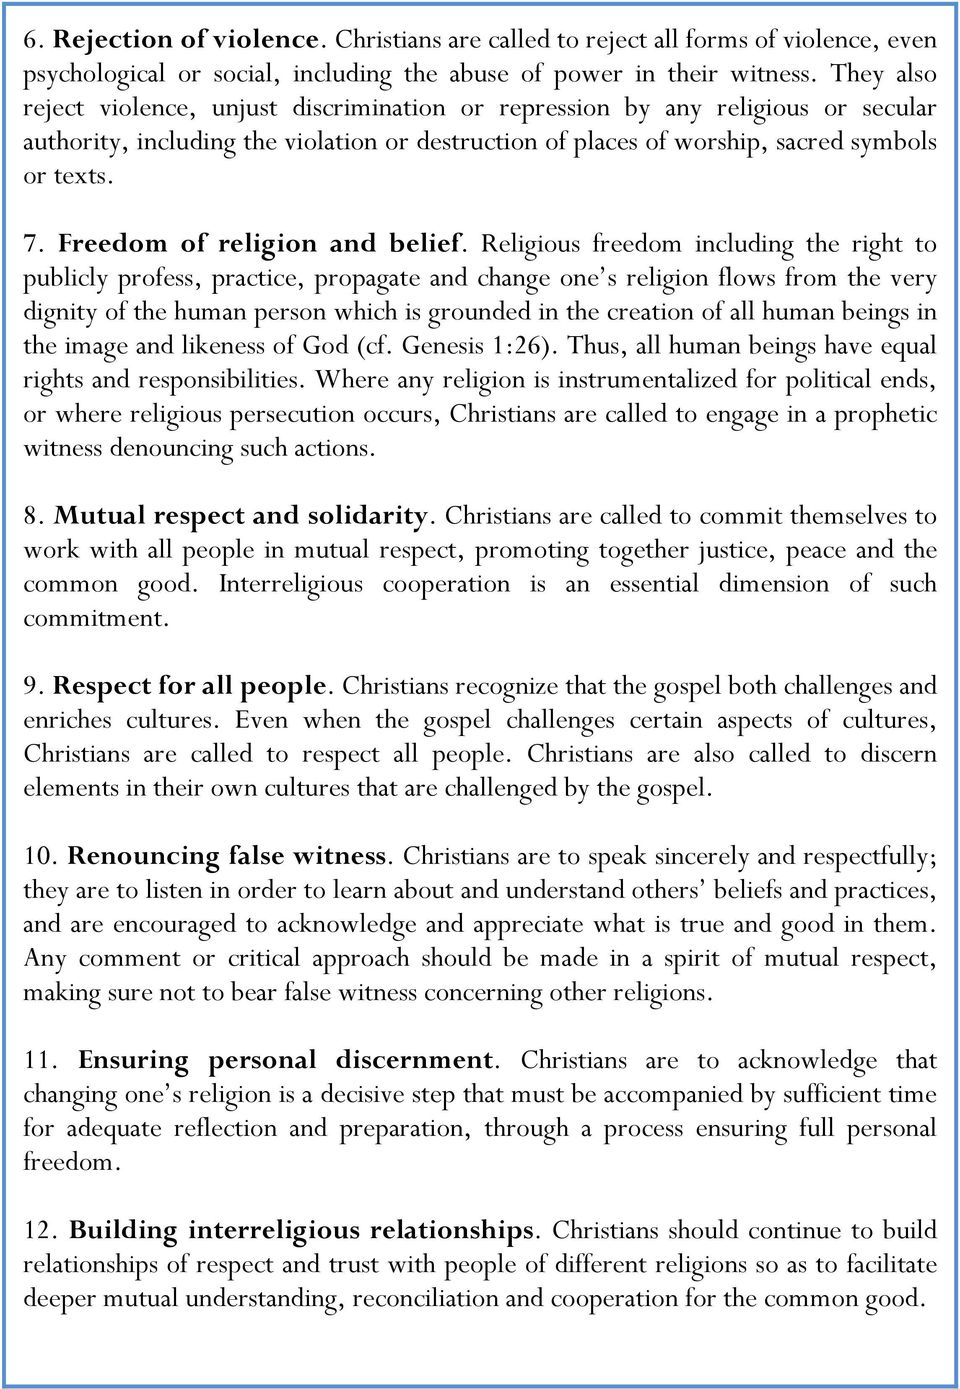 Freedom of religion and belief.